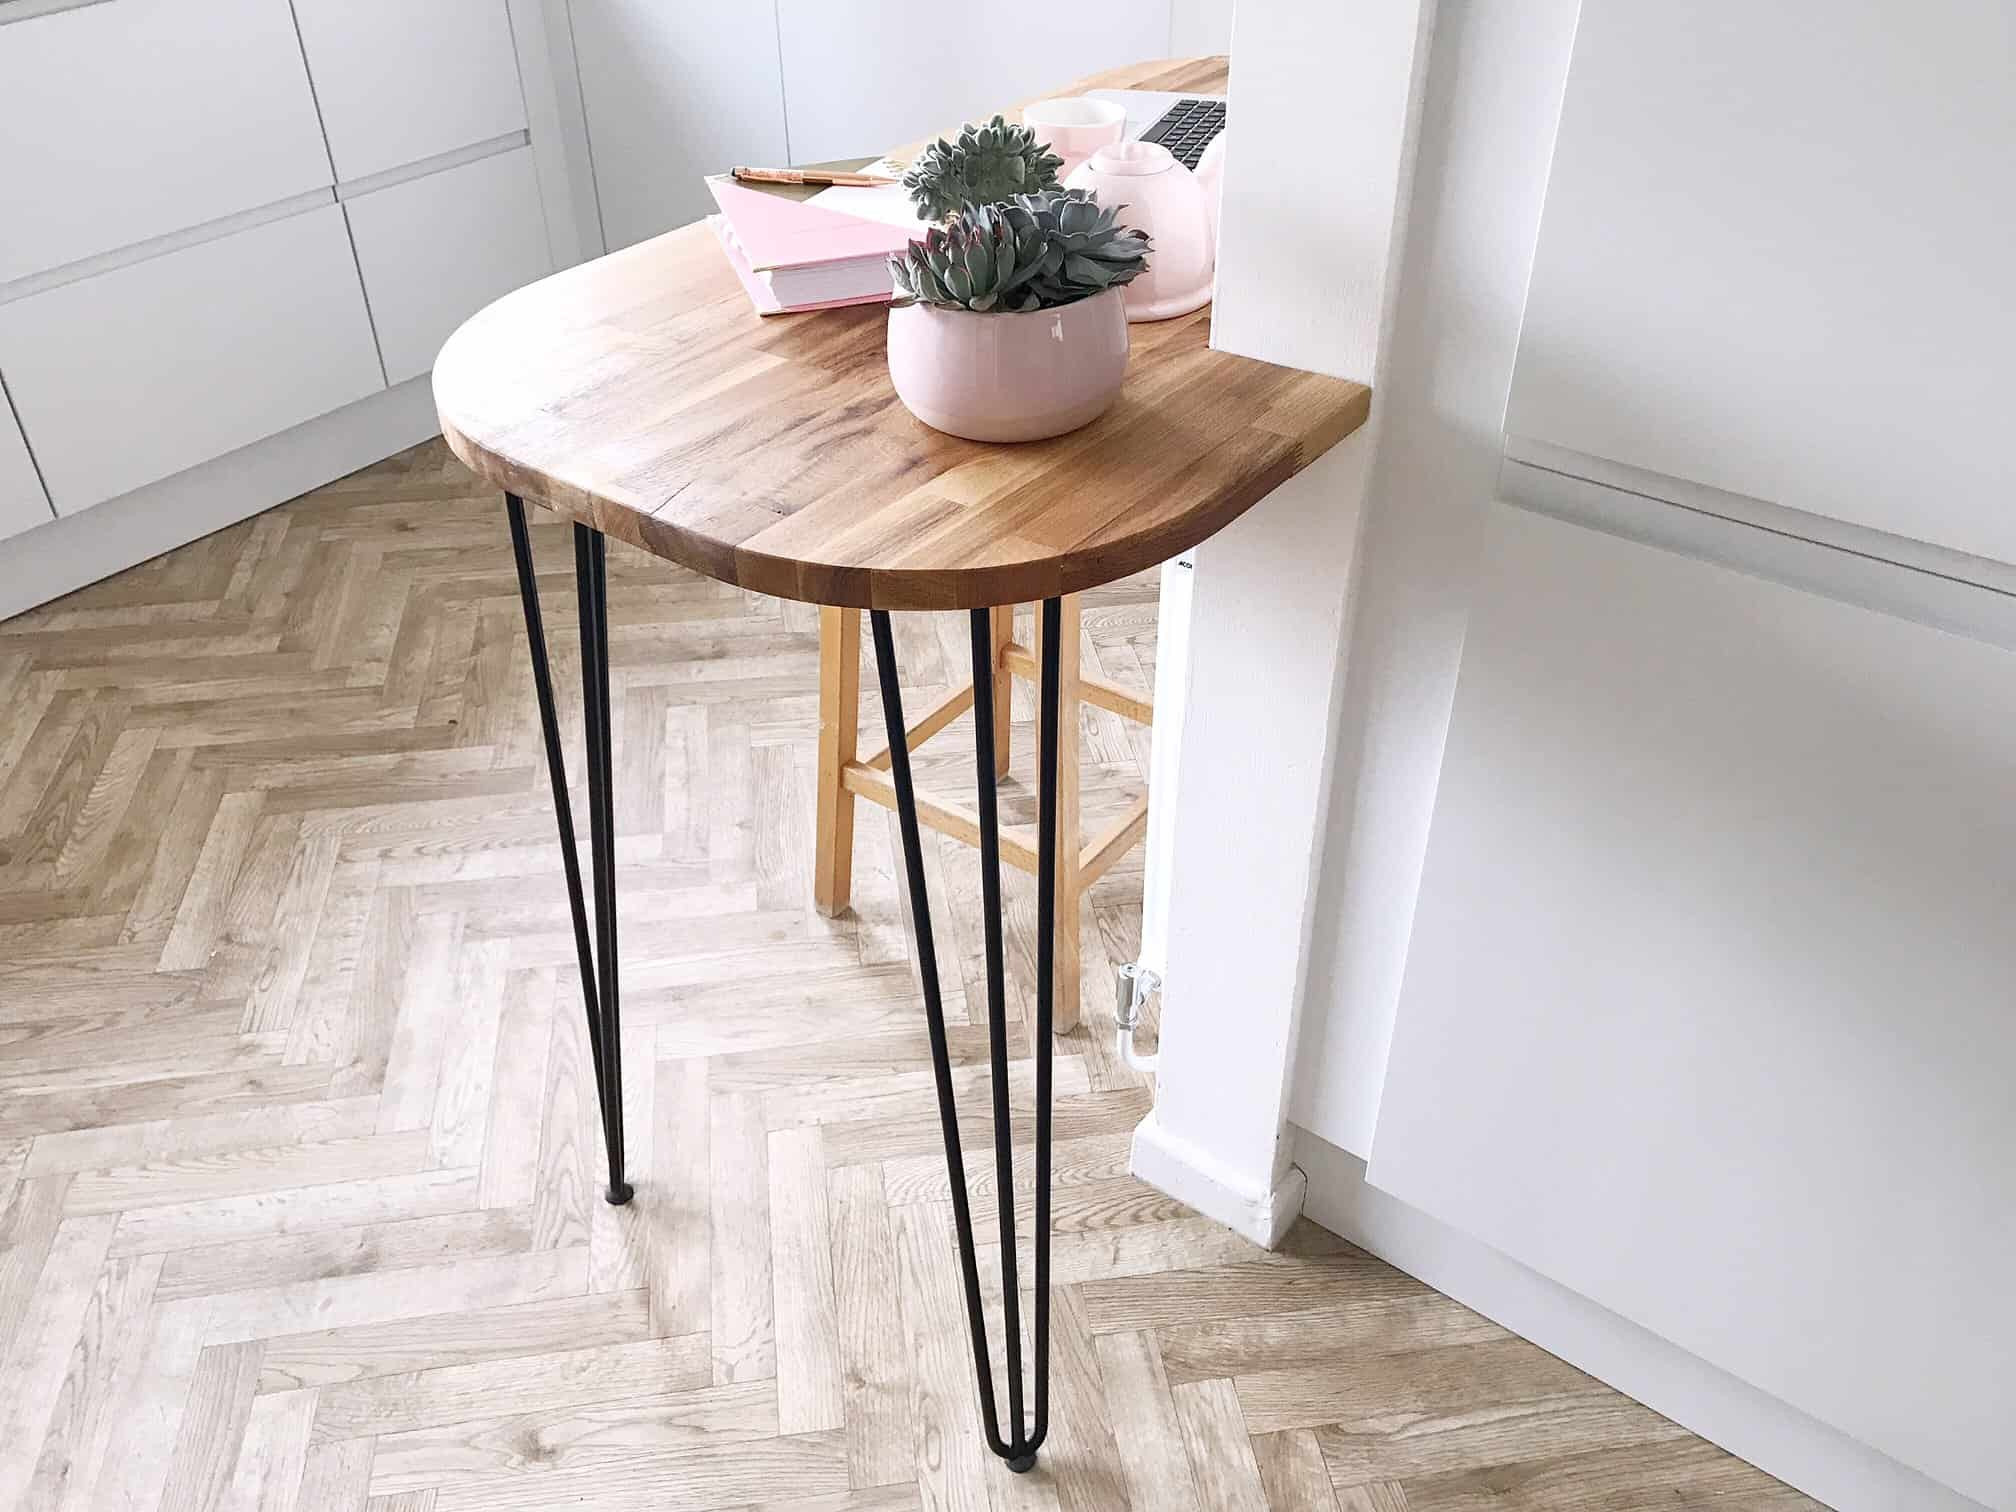 round metal stainless twin wooden table hickory kitchen island stool mosaic with laminated wood cabinet iron and range hood creamy steel floor bar custom black chrome stools pendant islands flooring glass oak back breakfast